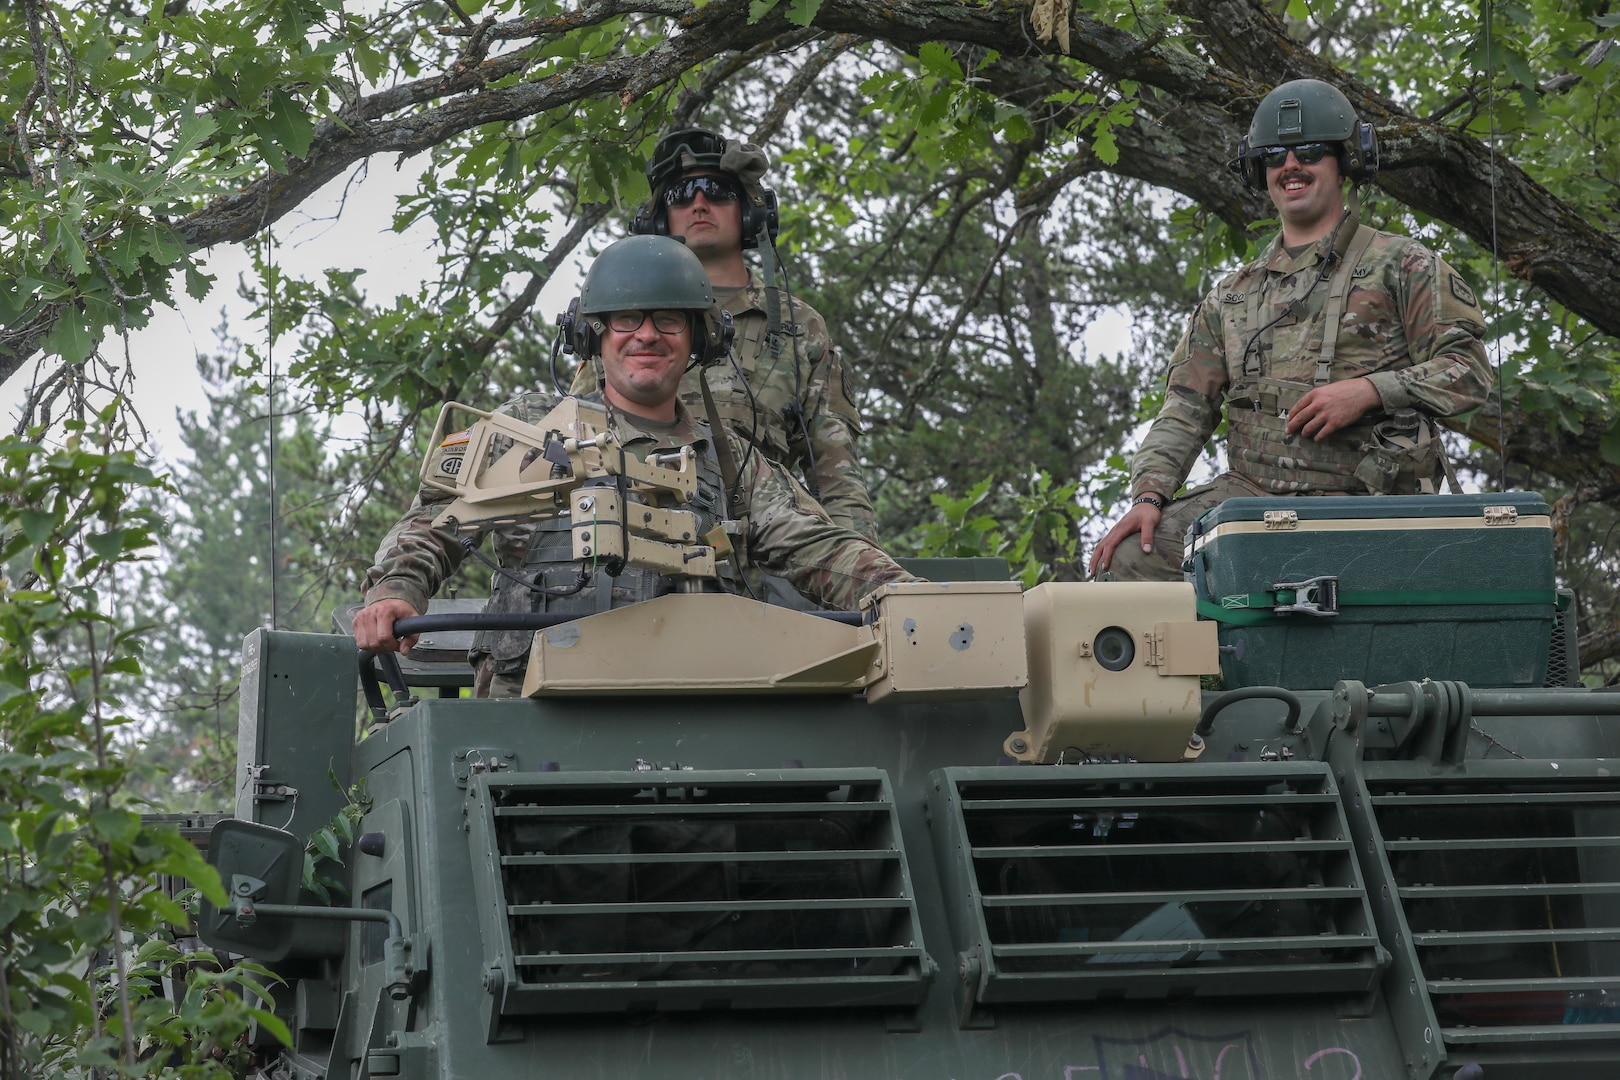 HIMARS crew members in the 1-147th Field Artillery Battalion, South Dakota National Guard, conduct annual training, waiting for orders inside their M270A1 MLRS at Camp Ripley Training Center in Minnesota July 15, 2021. The main mission of the 1-147th FA is to deliver precision fire on enemies.